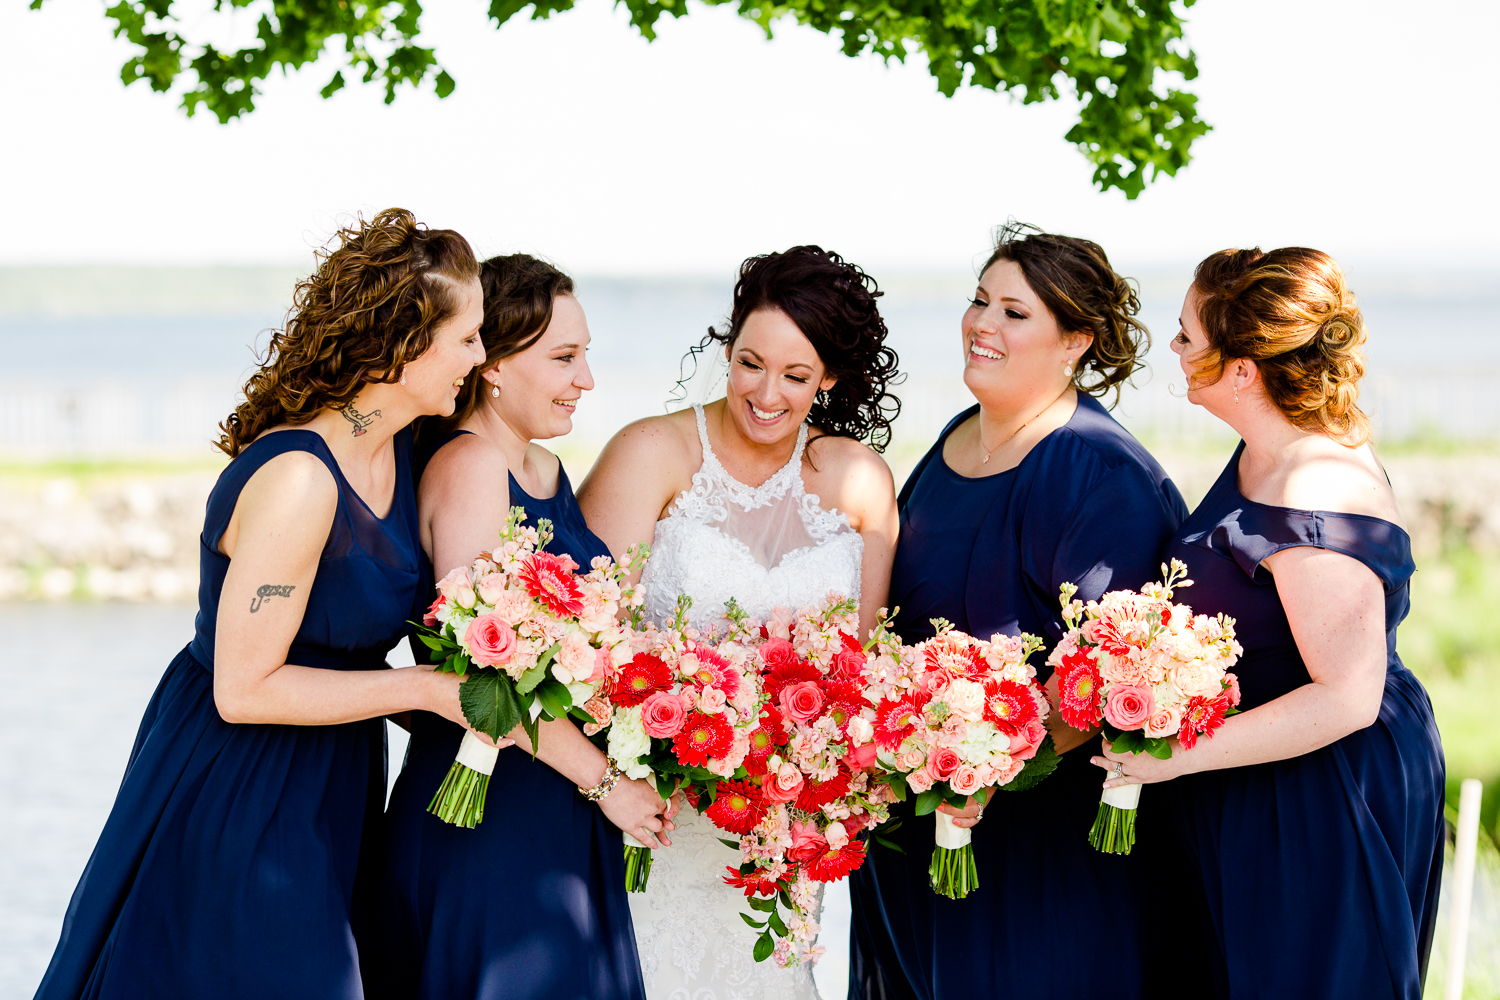 Bridesmaids wearing navy blue dresses surround a bride in a white gown. They have coral flowers. They are laughing.